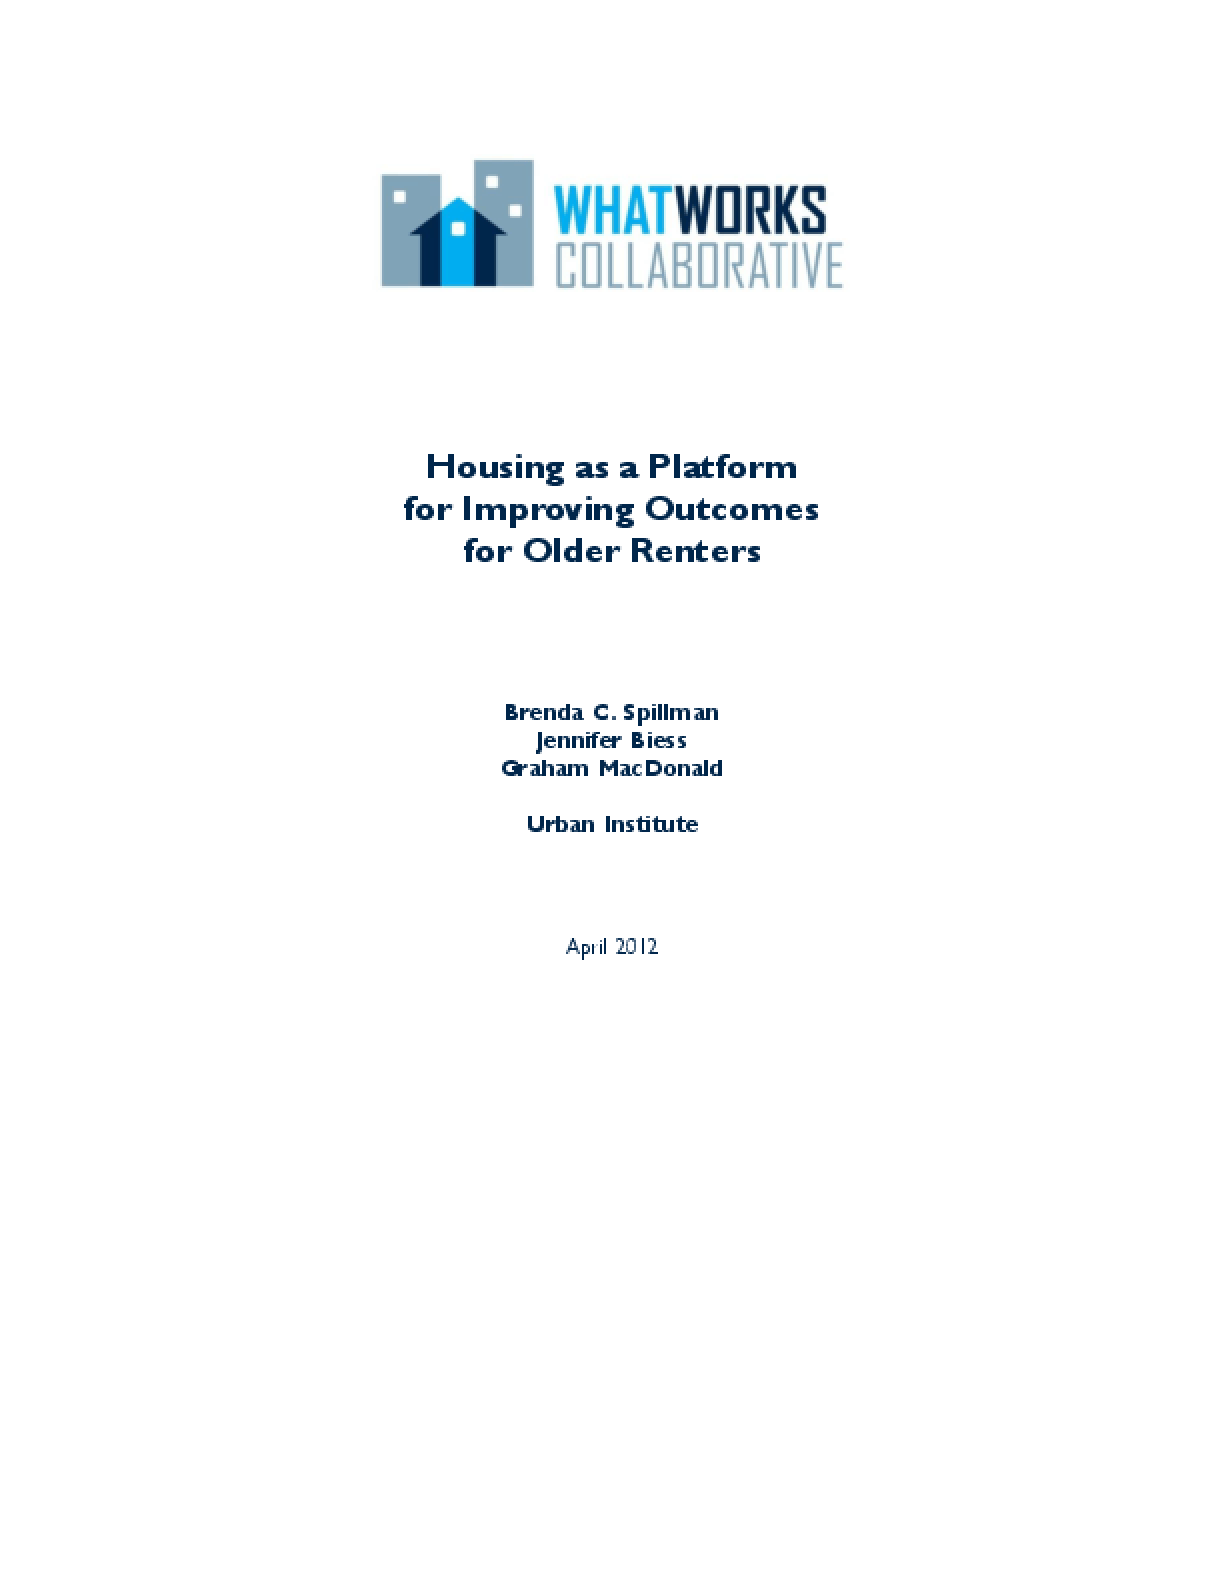 Housing as a Platform for Improving Outcomes for Older Renters